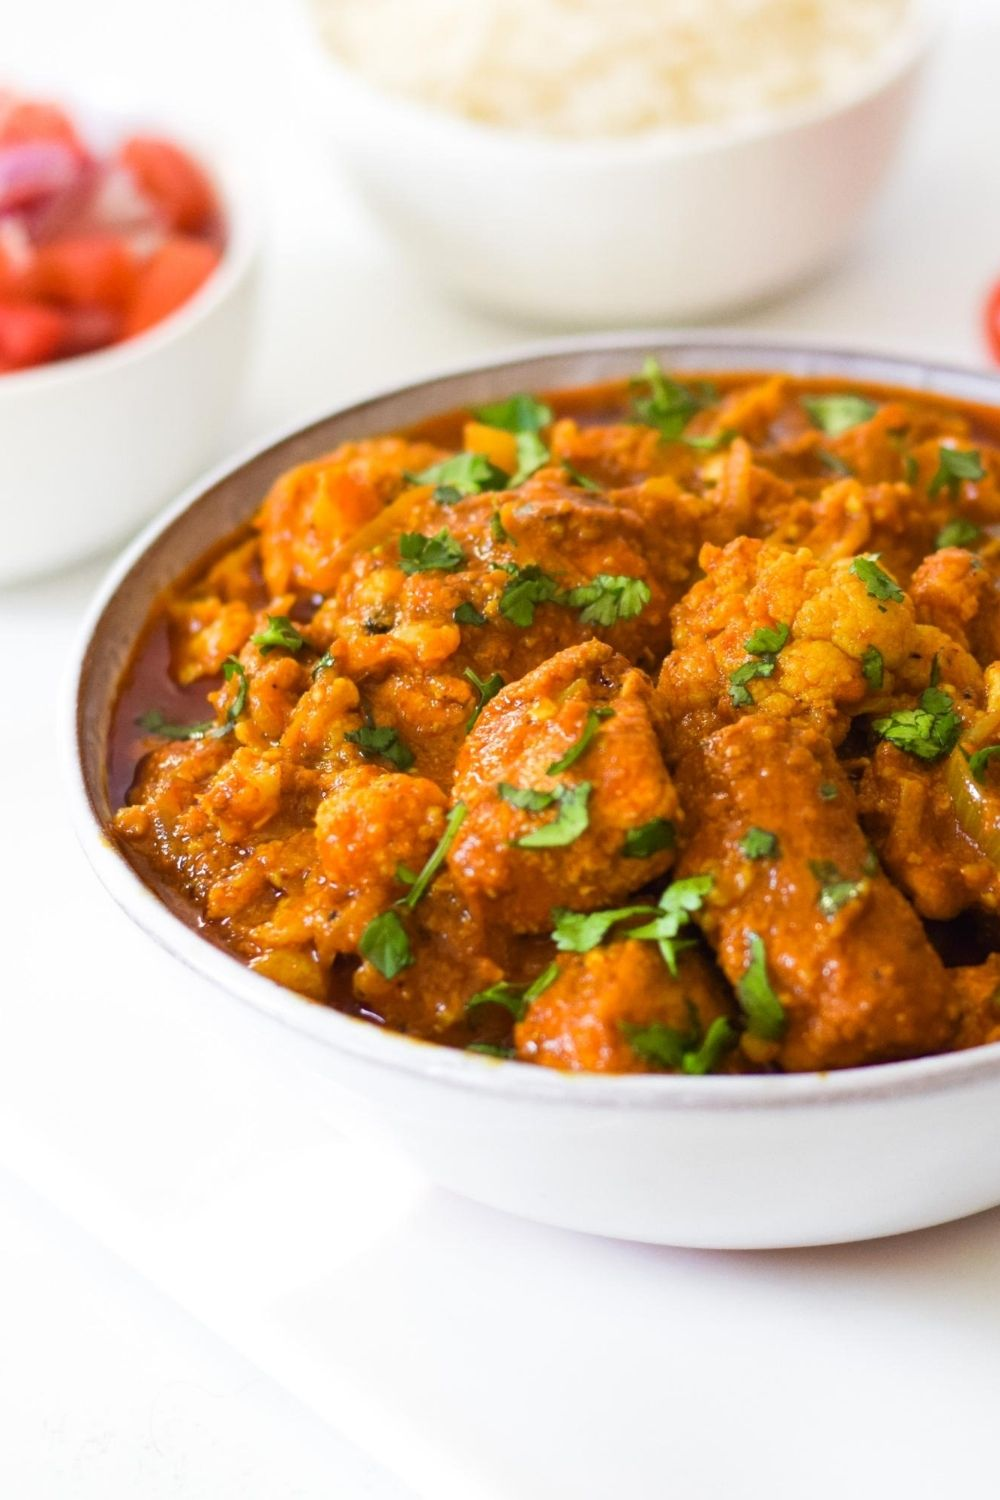 Cauliflower and Chicken Curry in a white bowl